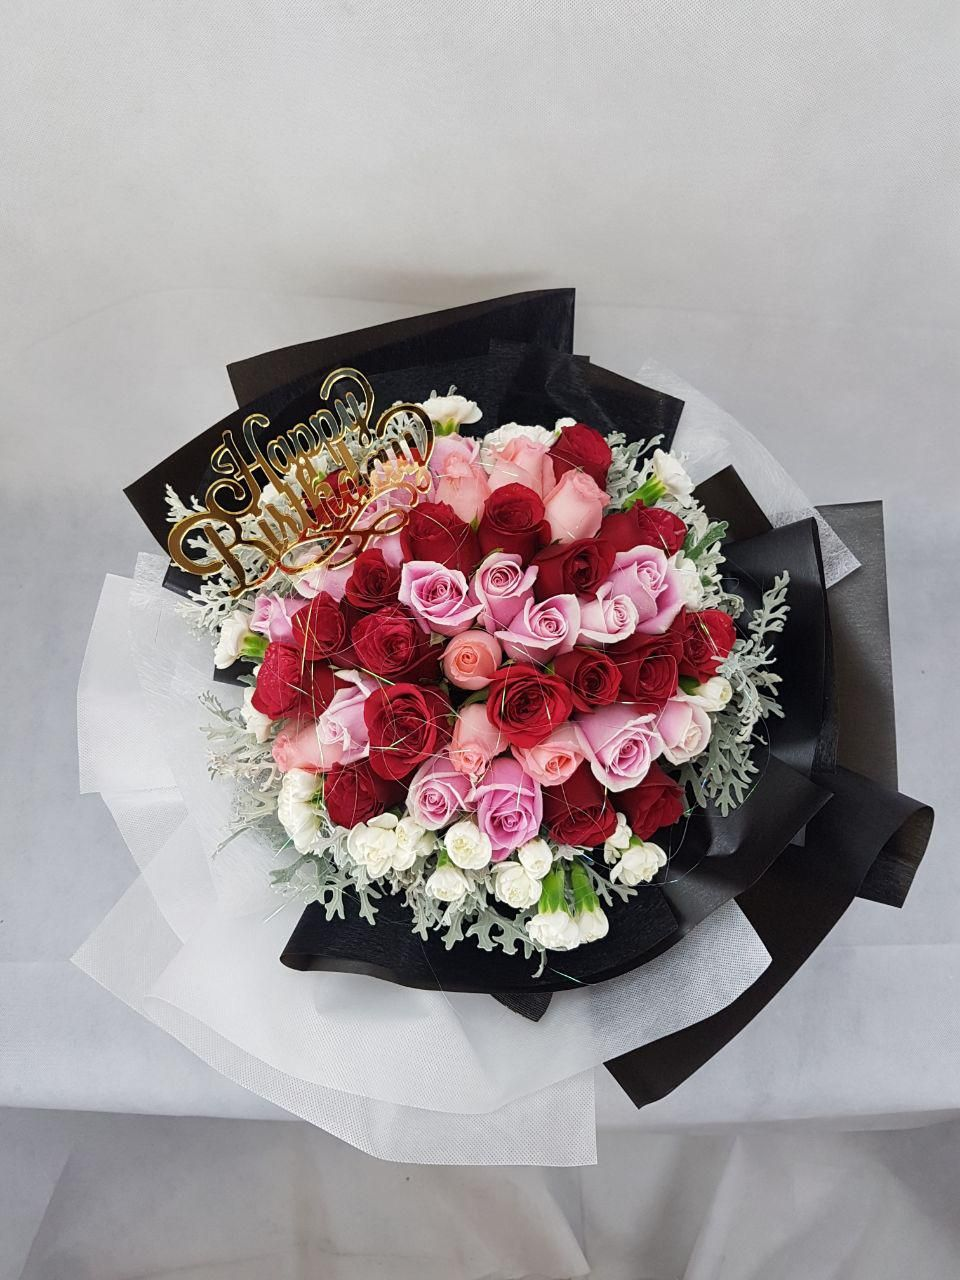 Nieldelia florist is an cheapest murah online florist kedai bunga nieldelia florist is an cheapest murah online florist kedai bunga that providing flower bear and chocolate bouquet with delivery service in kl pj izmirmasajfo